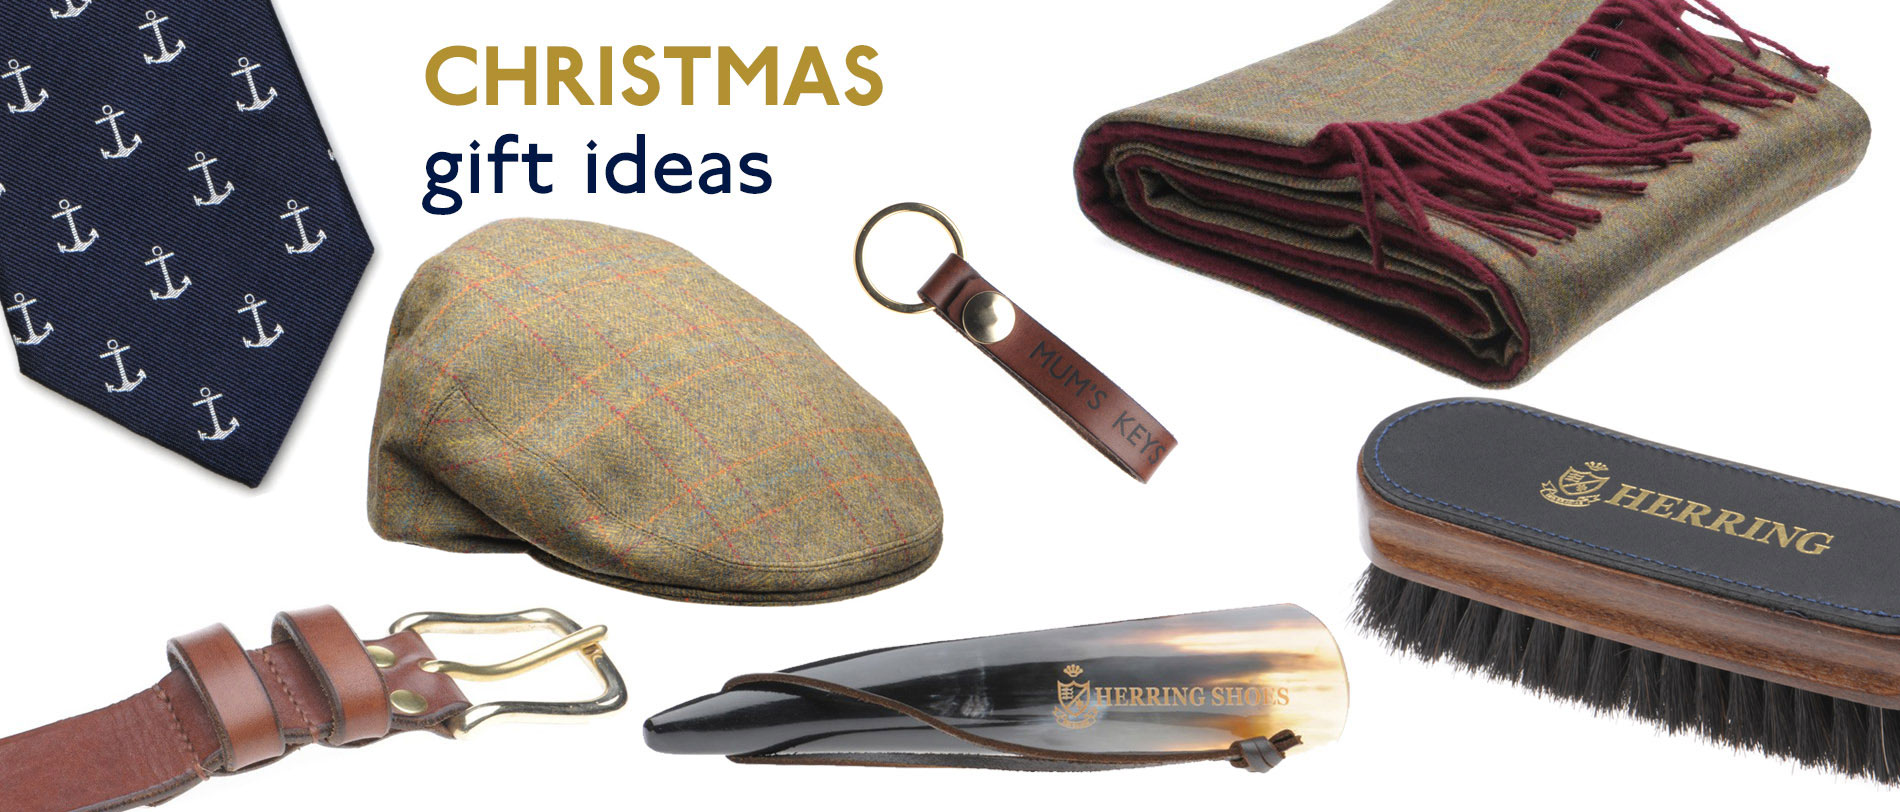 Great gift ideas for your loved ones this Christmas